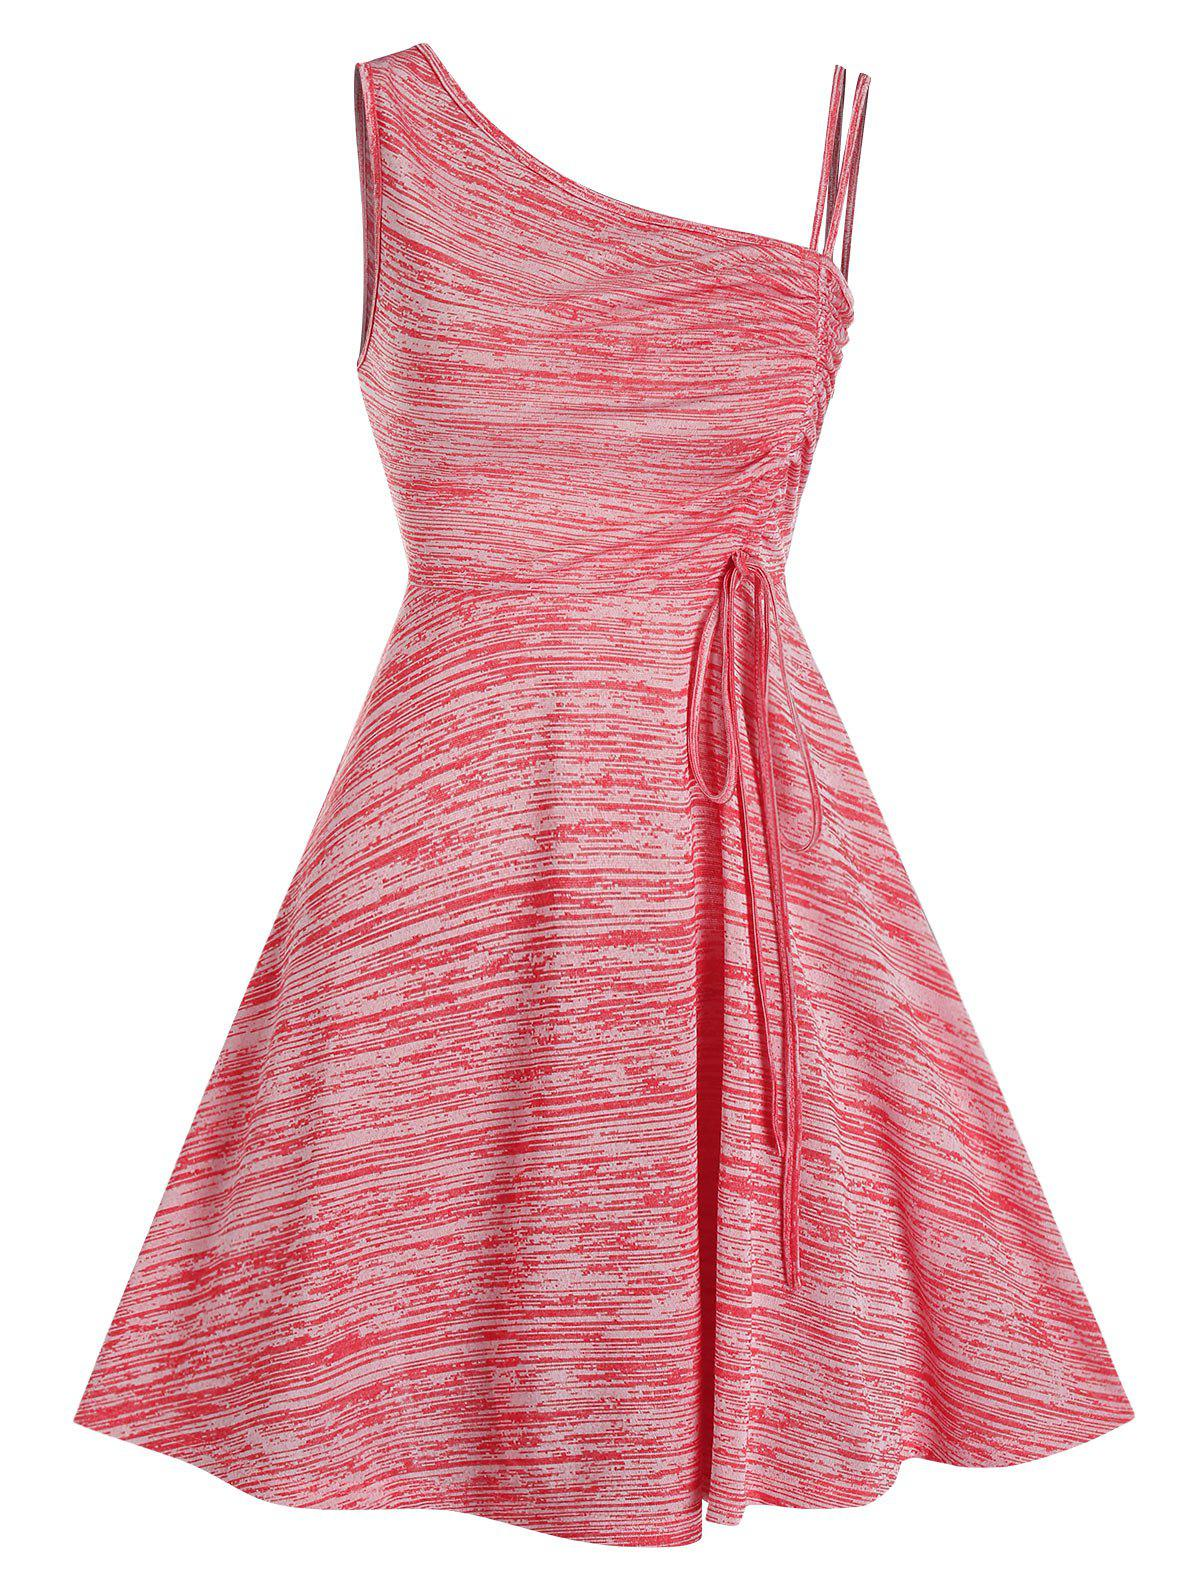 Chic Sleeveless Space Dye Print Cinched Dress